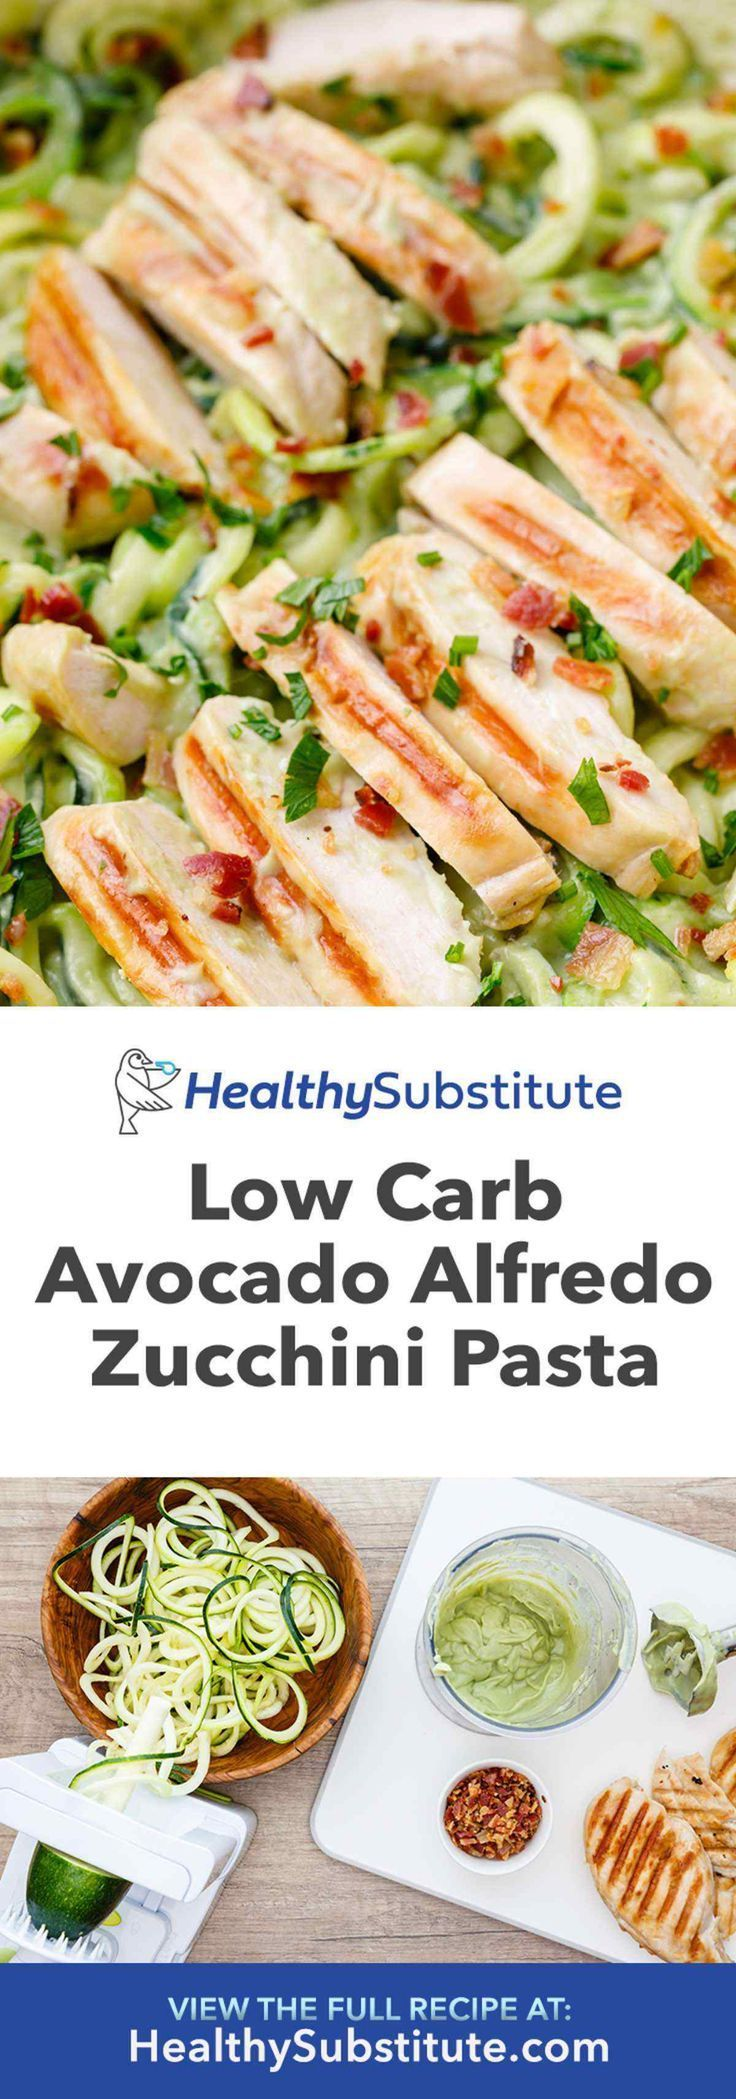 Avocado Alfredo Zucchini Pasta with Grilled Chicken and Bacon - Healthy Substitu... -